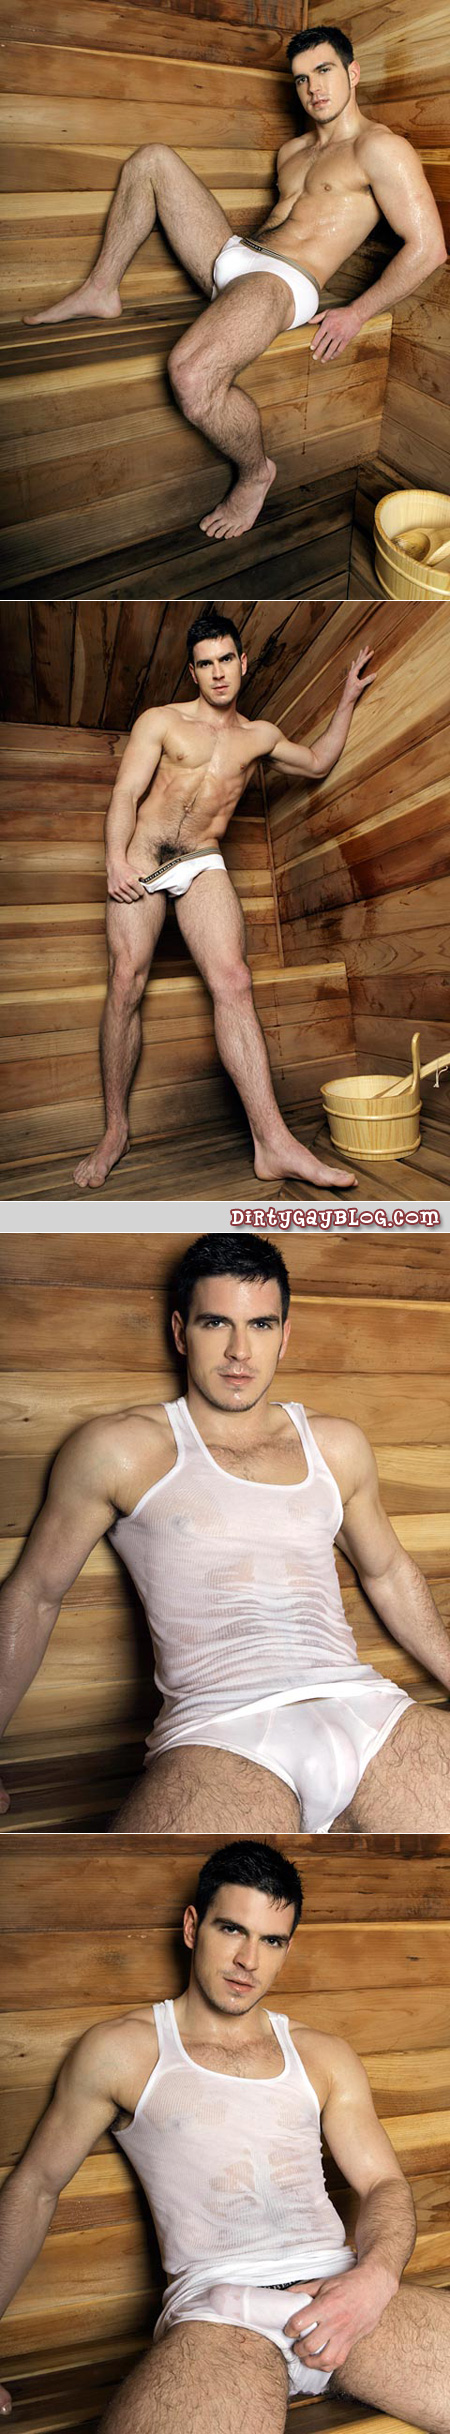 Hairy young brit with zero body fat sweats through his tight white underwear in the sauna.